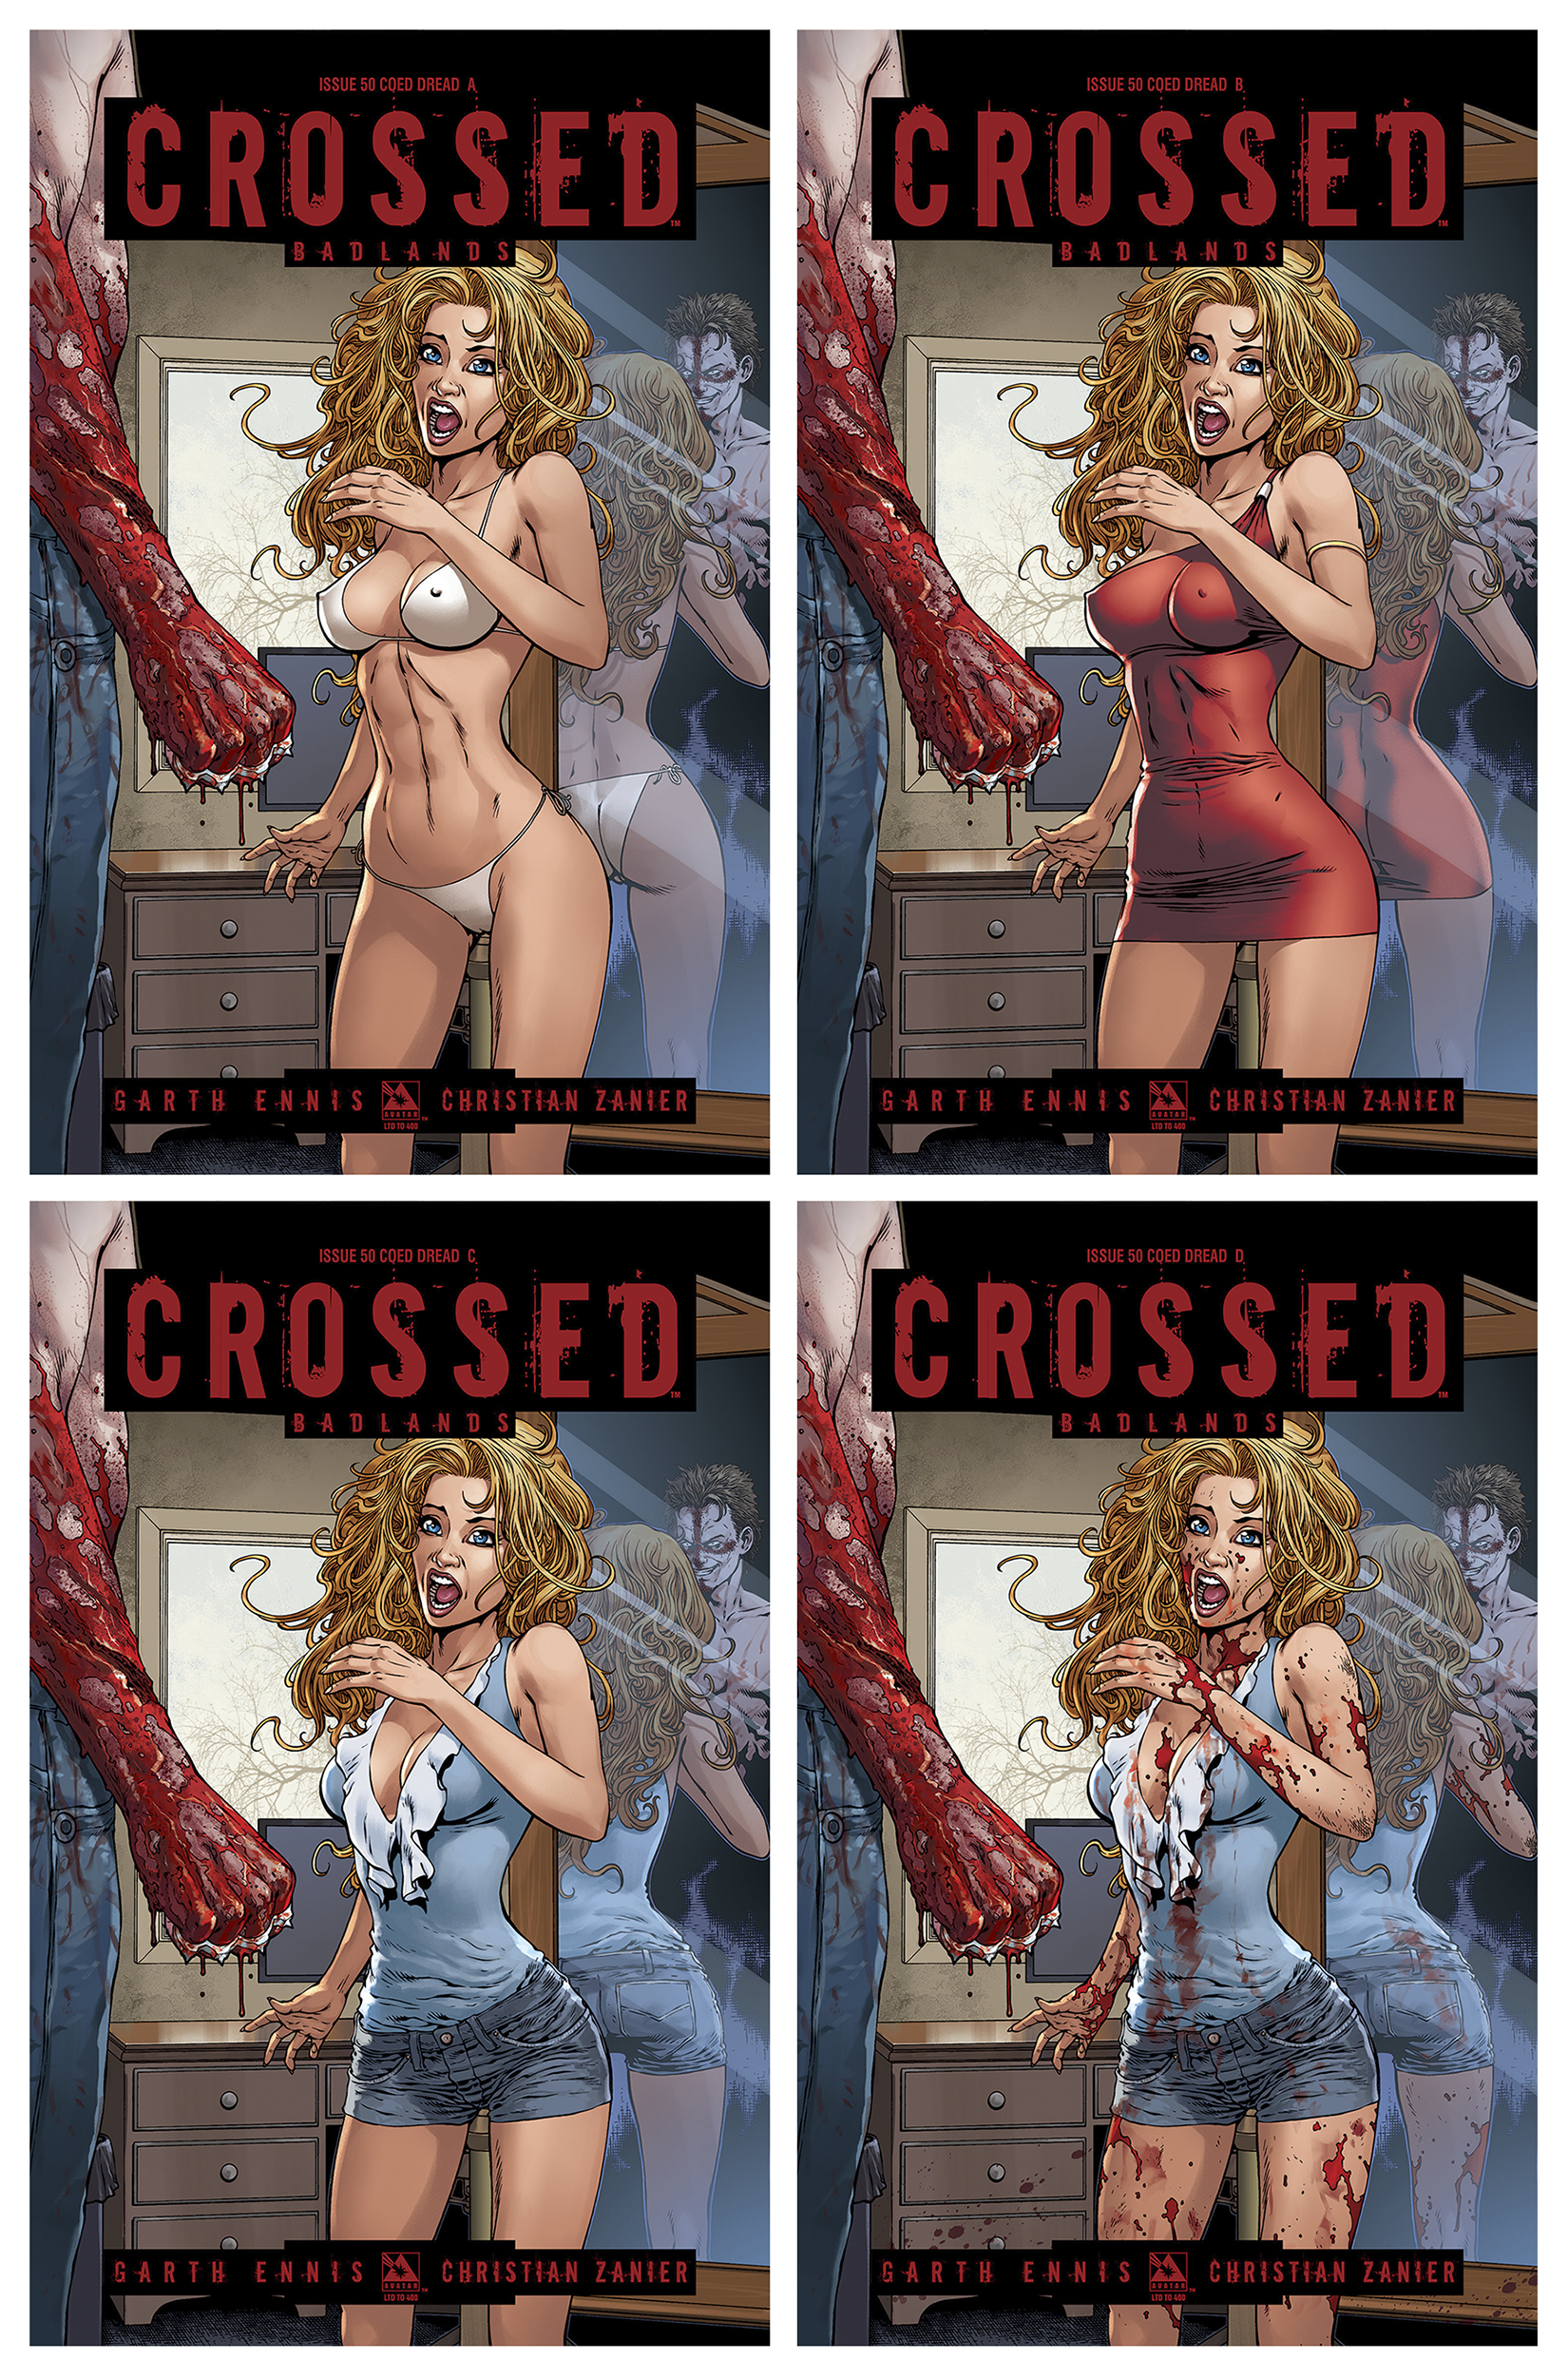 CROSSED BADLANDS #50 COED DREAD 4 CVR SET